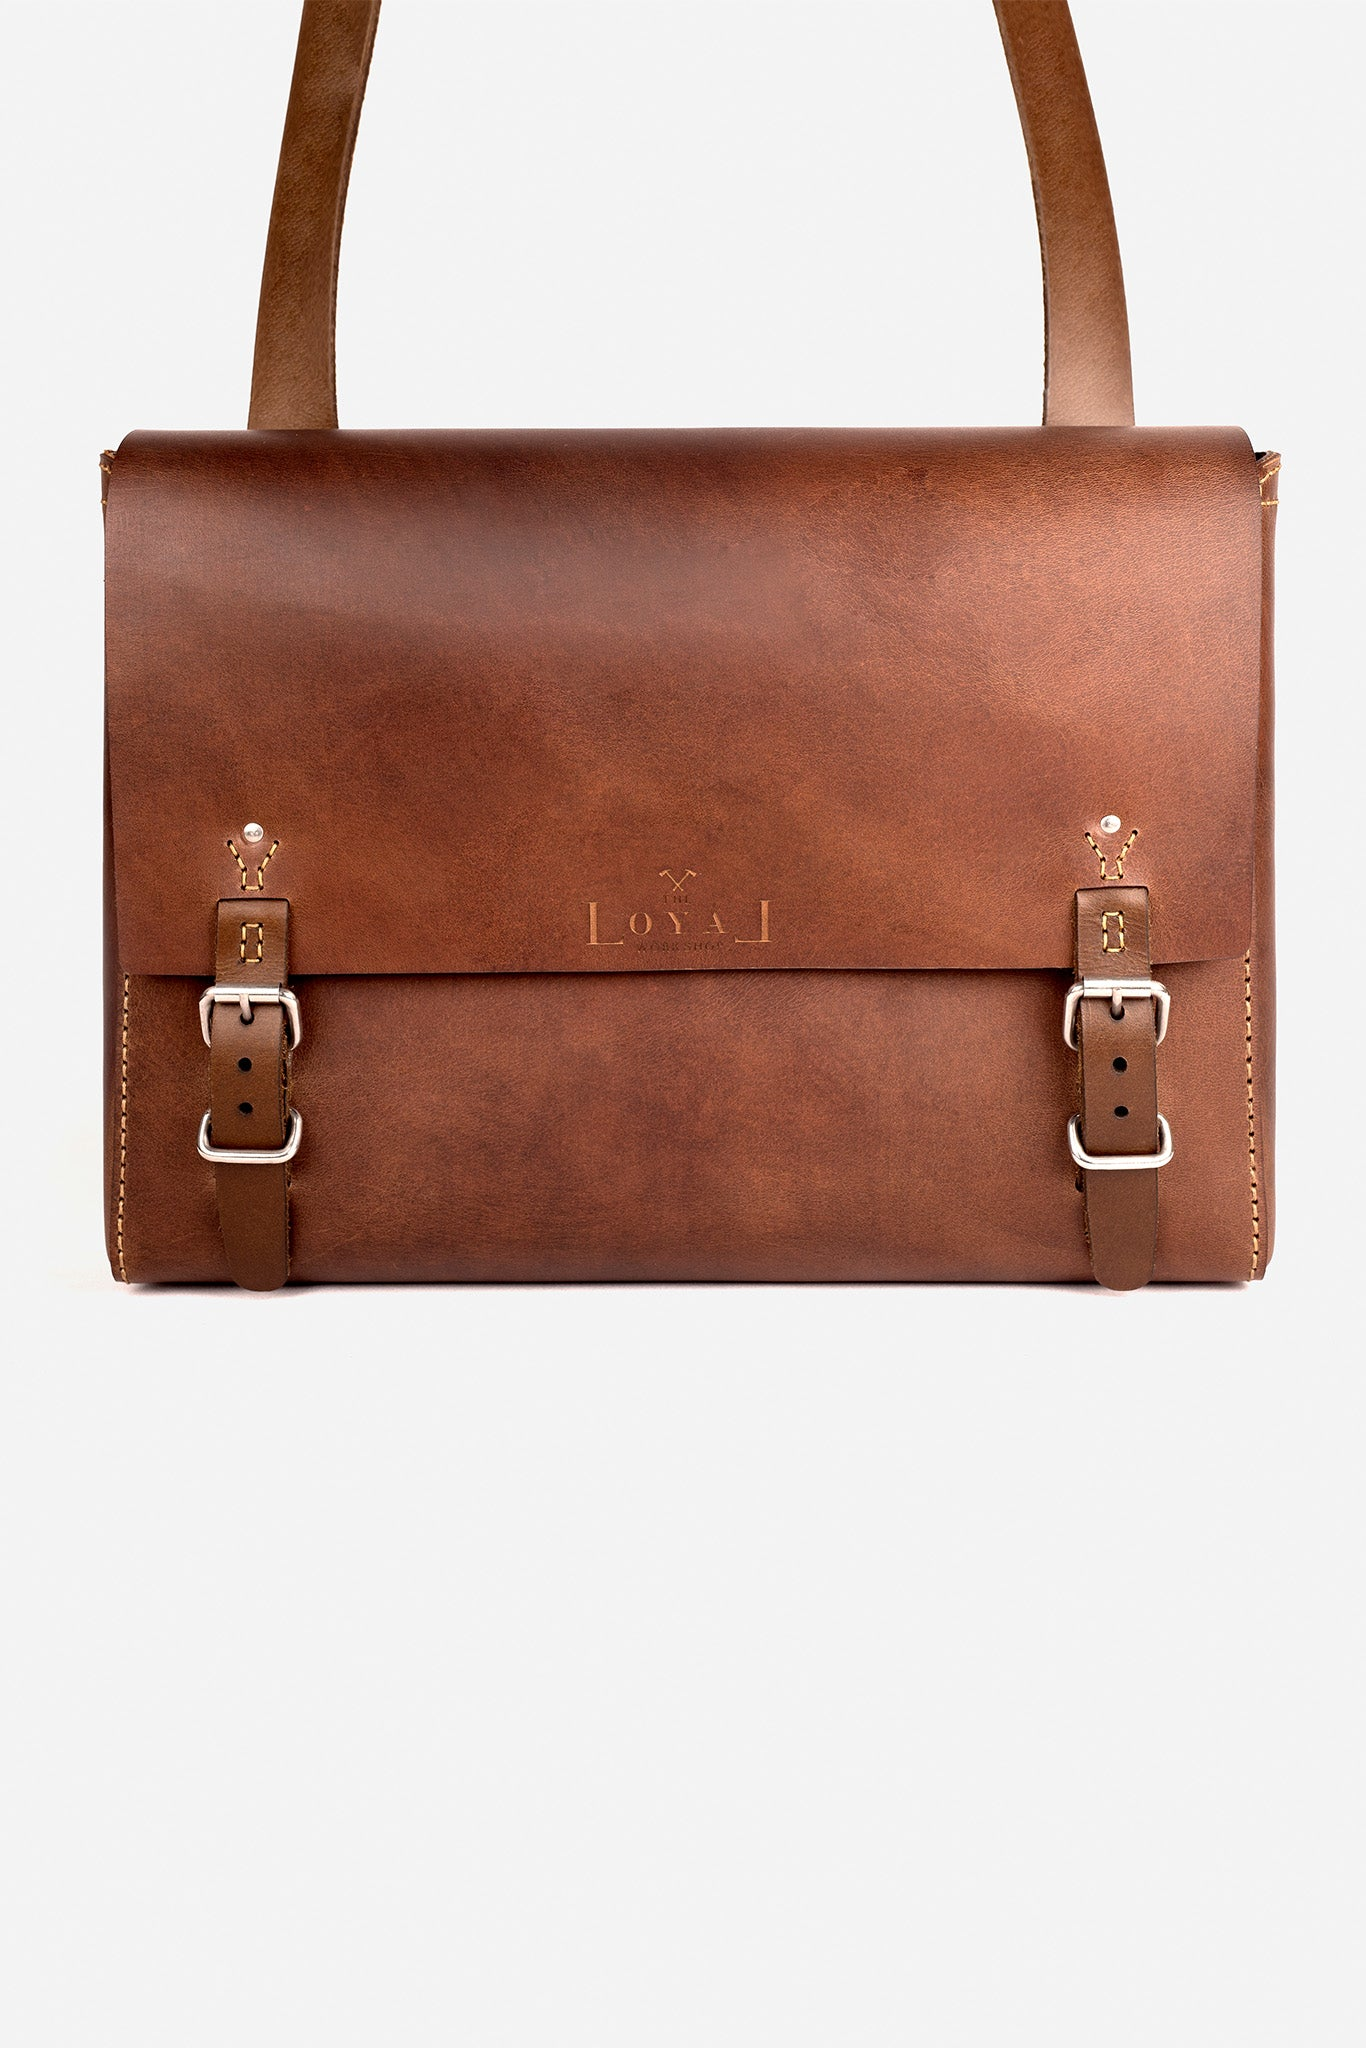 The Goodstead: Ethical Leather Satchel